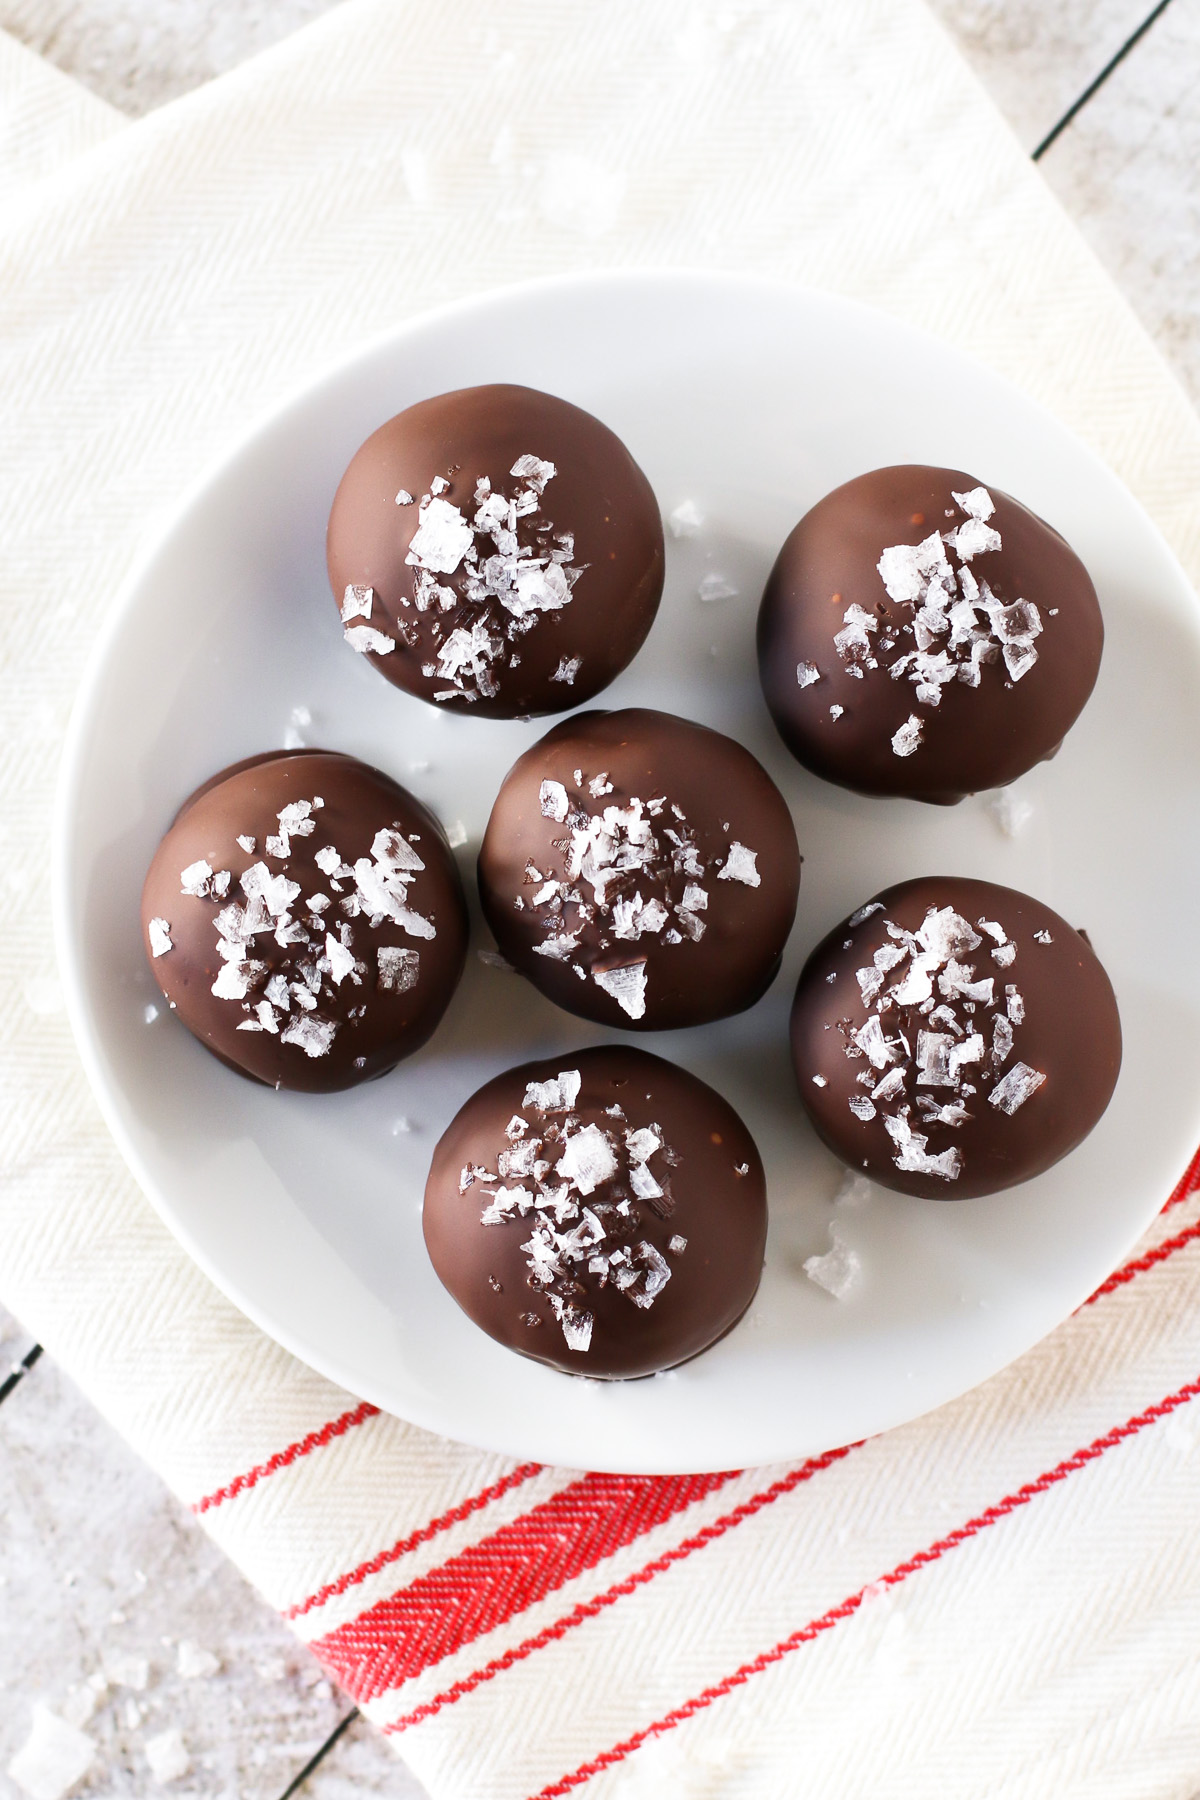 Gluten Free Vegan Sea Salt Brownie Truffles. These decadent brownie truffles are coated in dark chocolate and a sprinkling of sea salt flakes.